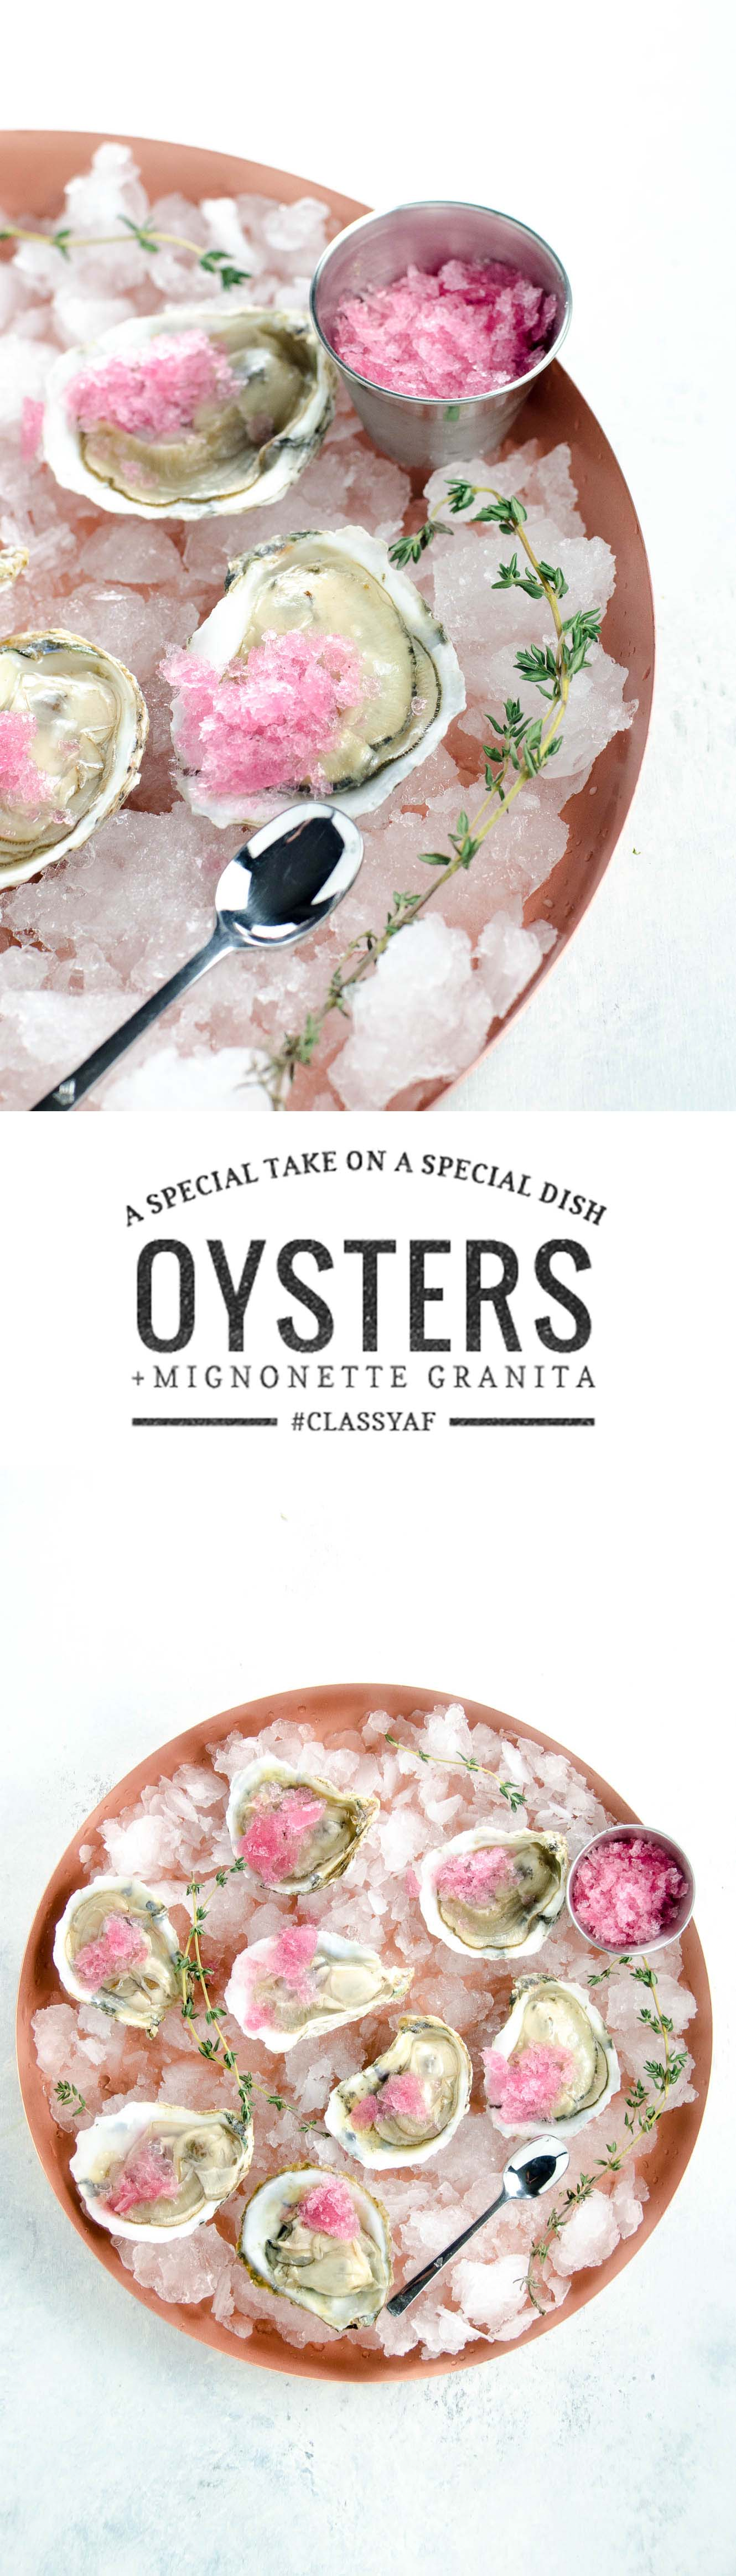 Oysters on the half shell with mignonette granita make an already special hors d'oeuvre even more special. Plus: learn to shuck an oyster in 30 seconds.